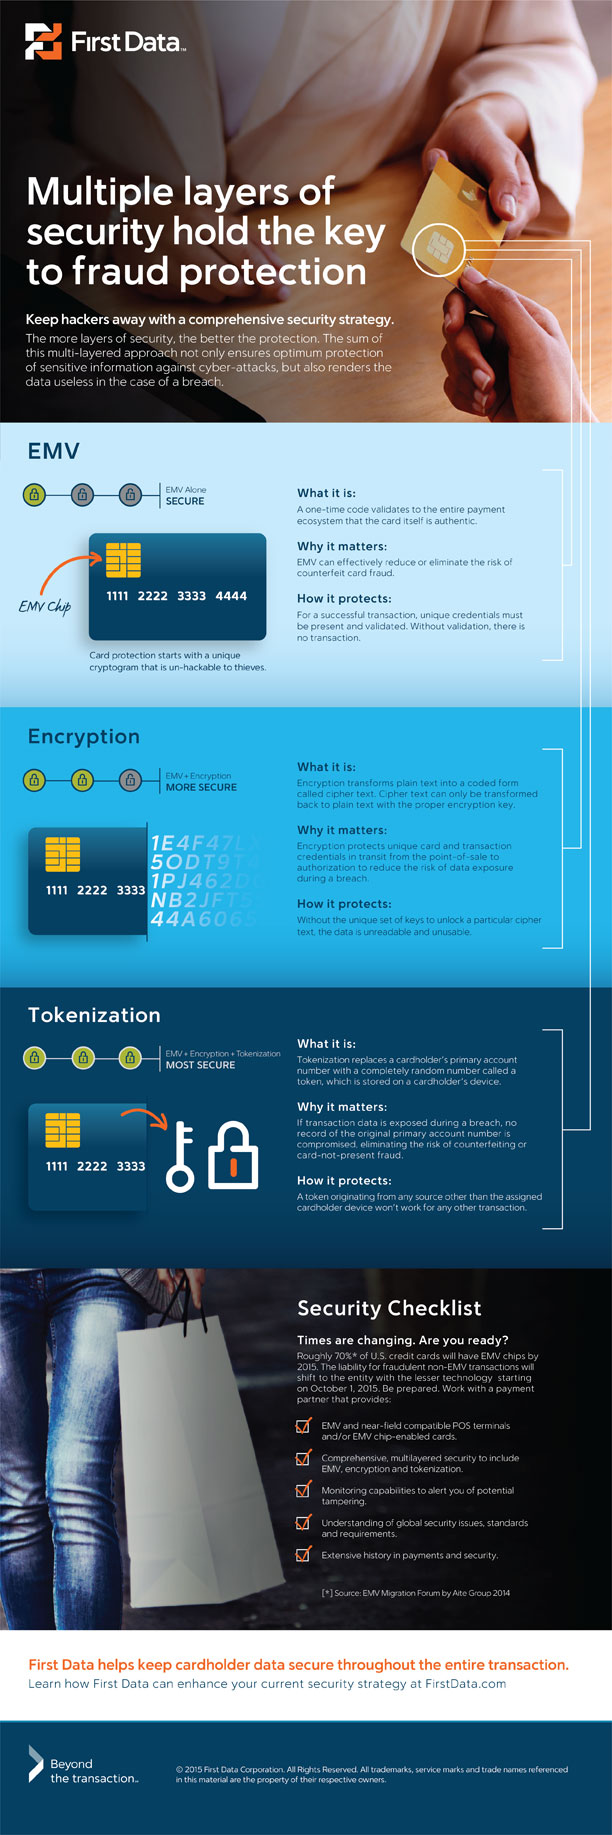 14-04110_FDAT_IG_EMV-Tokenization-Security-Infographic-final